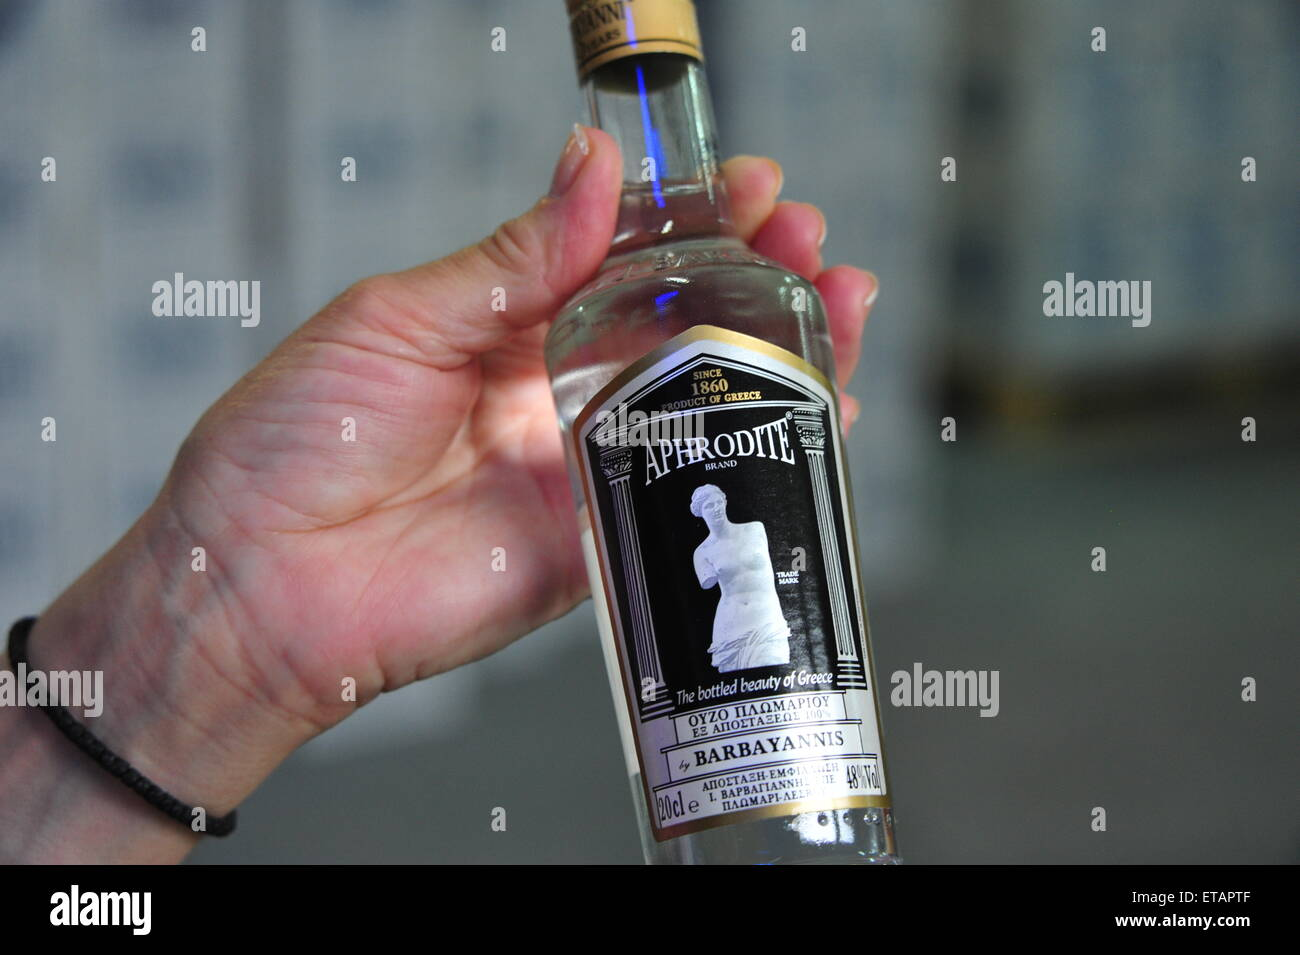 Ouzo Production, Barbayannis Factory, Lesvos, Greece. - Stock Image